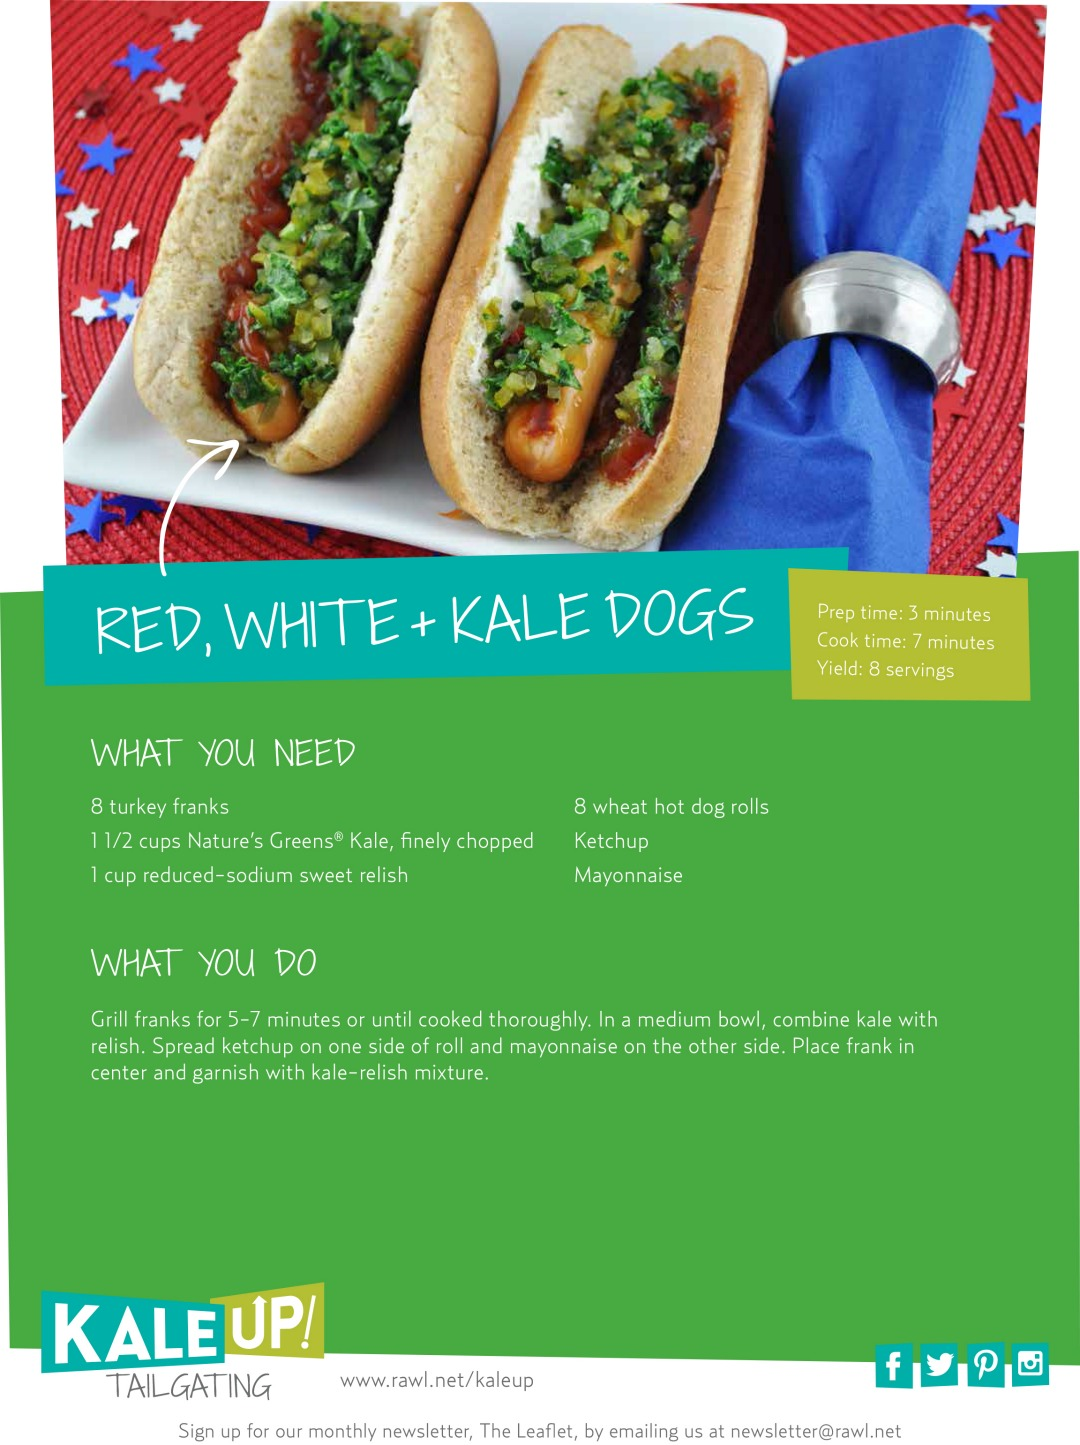 Red, White, and Kale Dogs